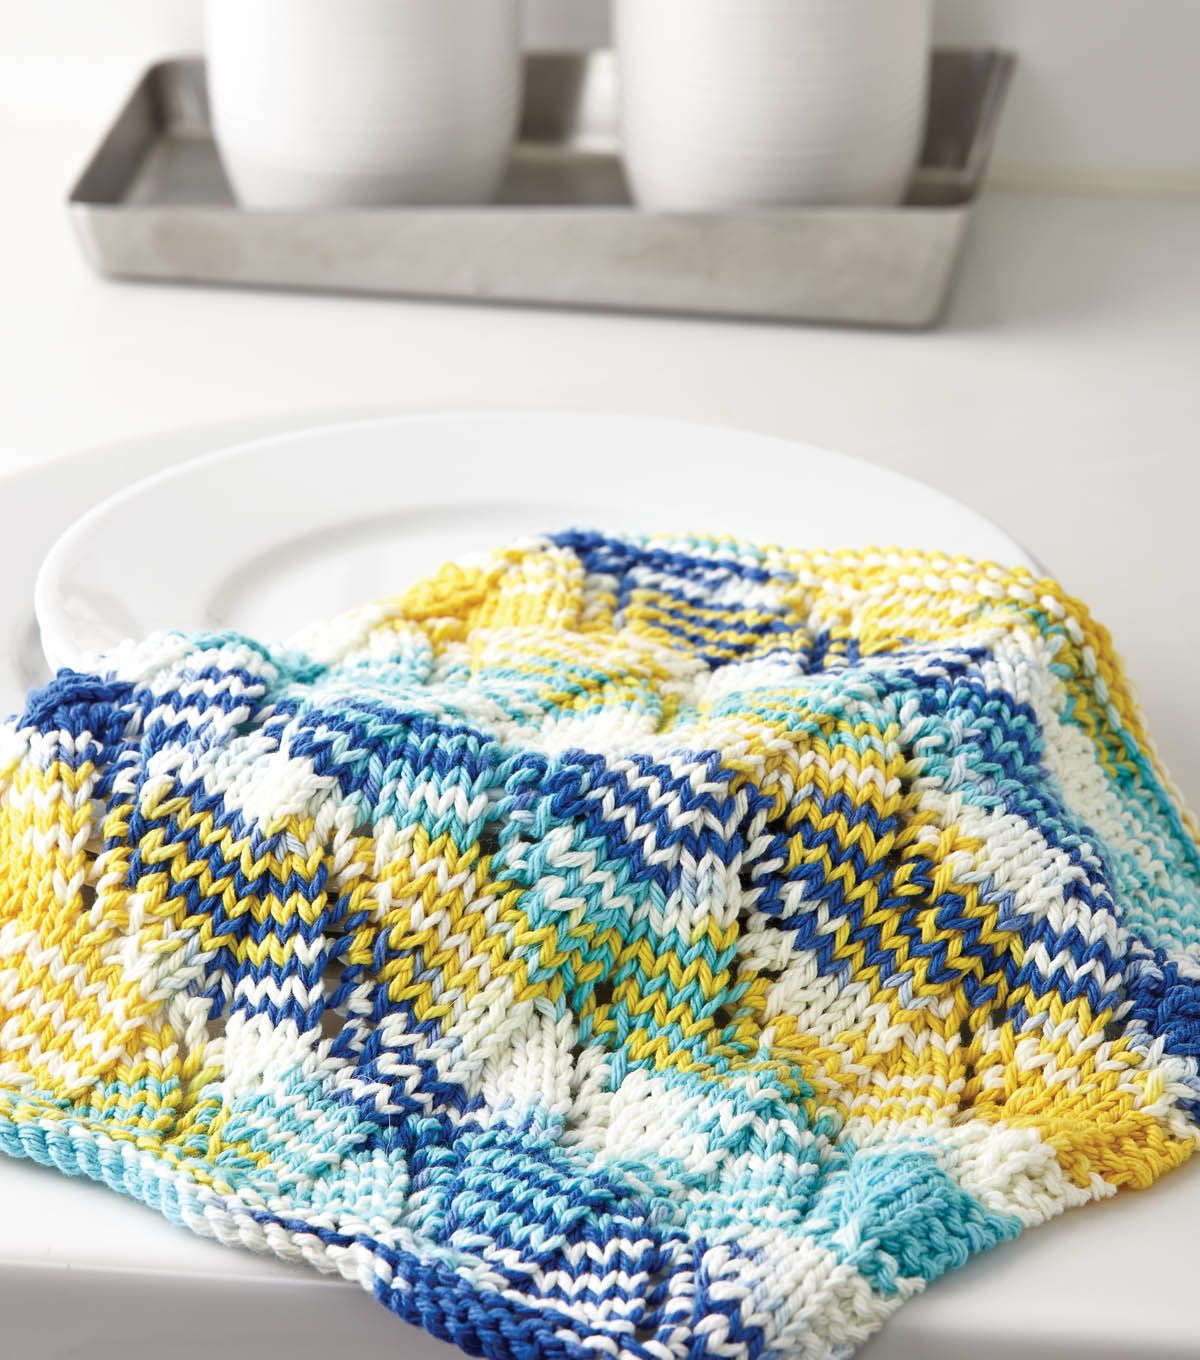 Sail away dishcloth knit with joann pinterest free pattern sail away dishcloth free pattern at jo ann fabric bankloansurffo Image collections